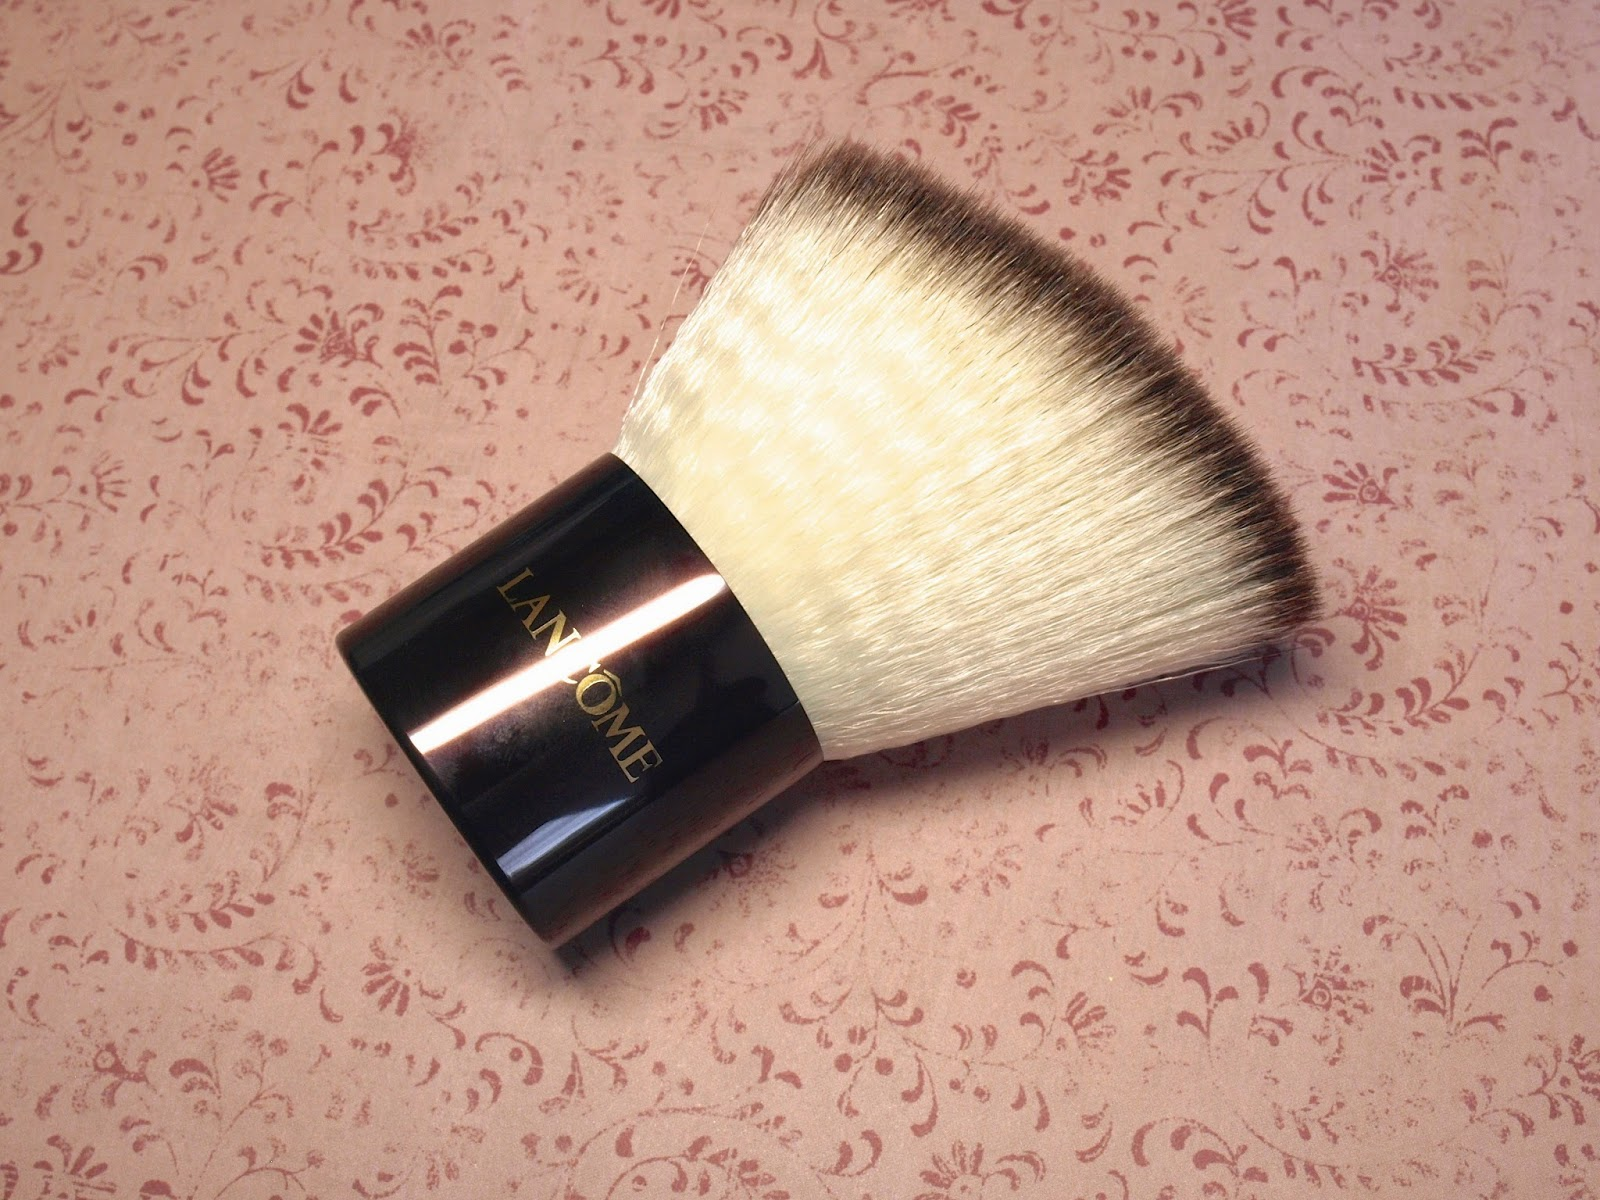 Lancôme Golden Riviera Summer 2014 Collection Star Bronzing Powder and Bronzing Brush: Review and Swatches